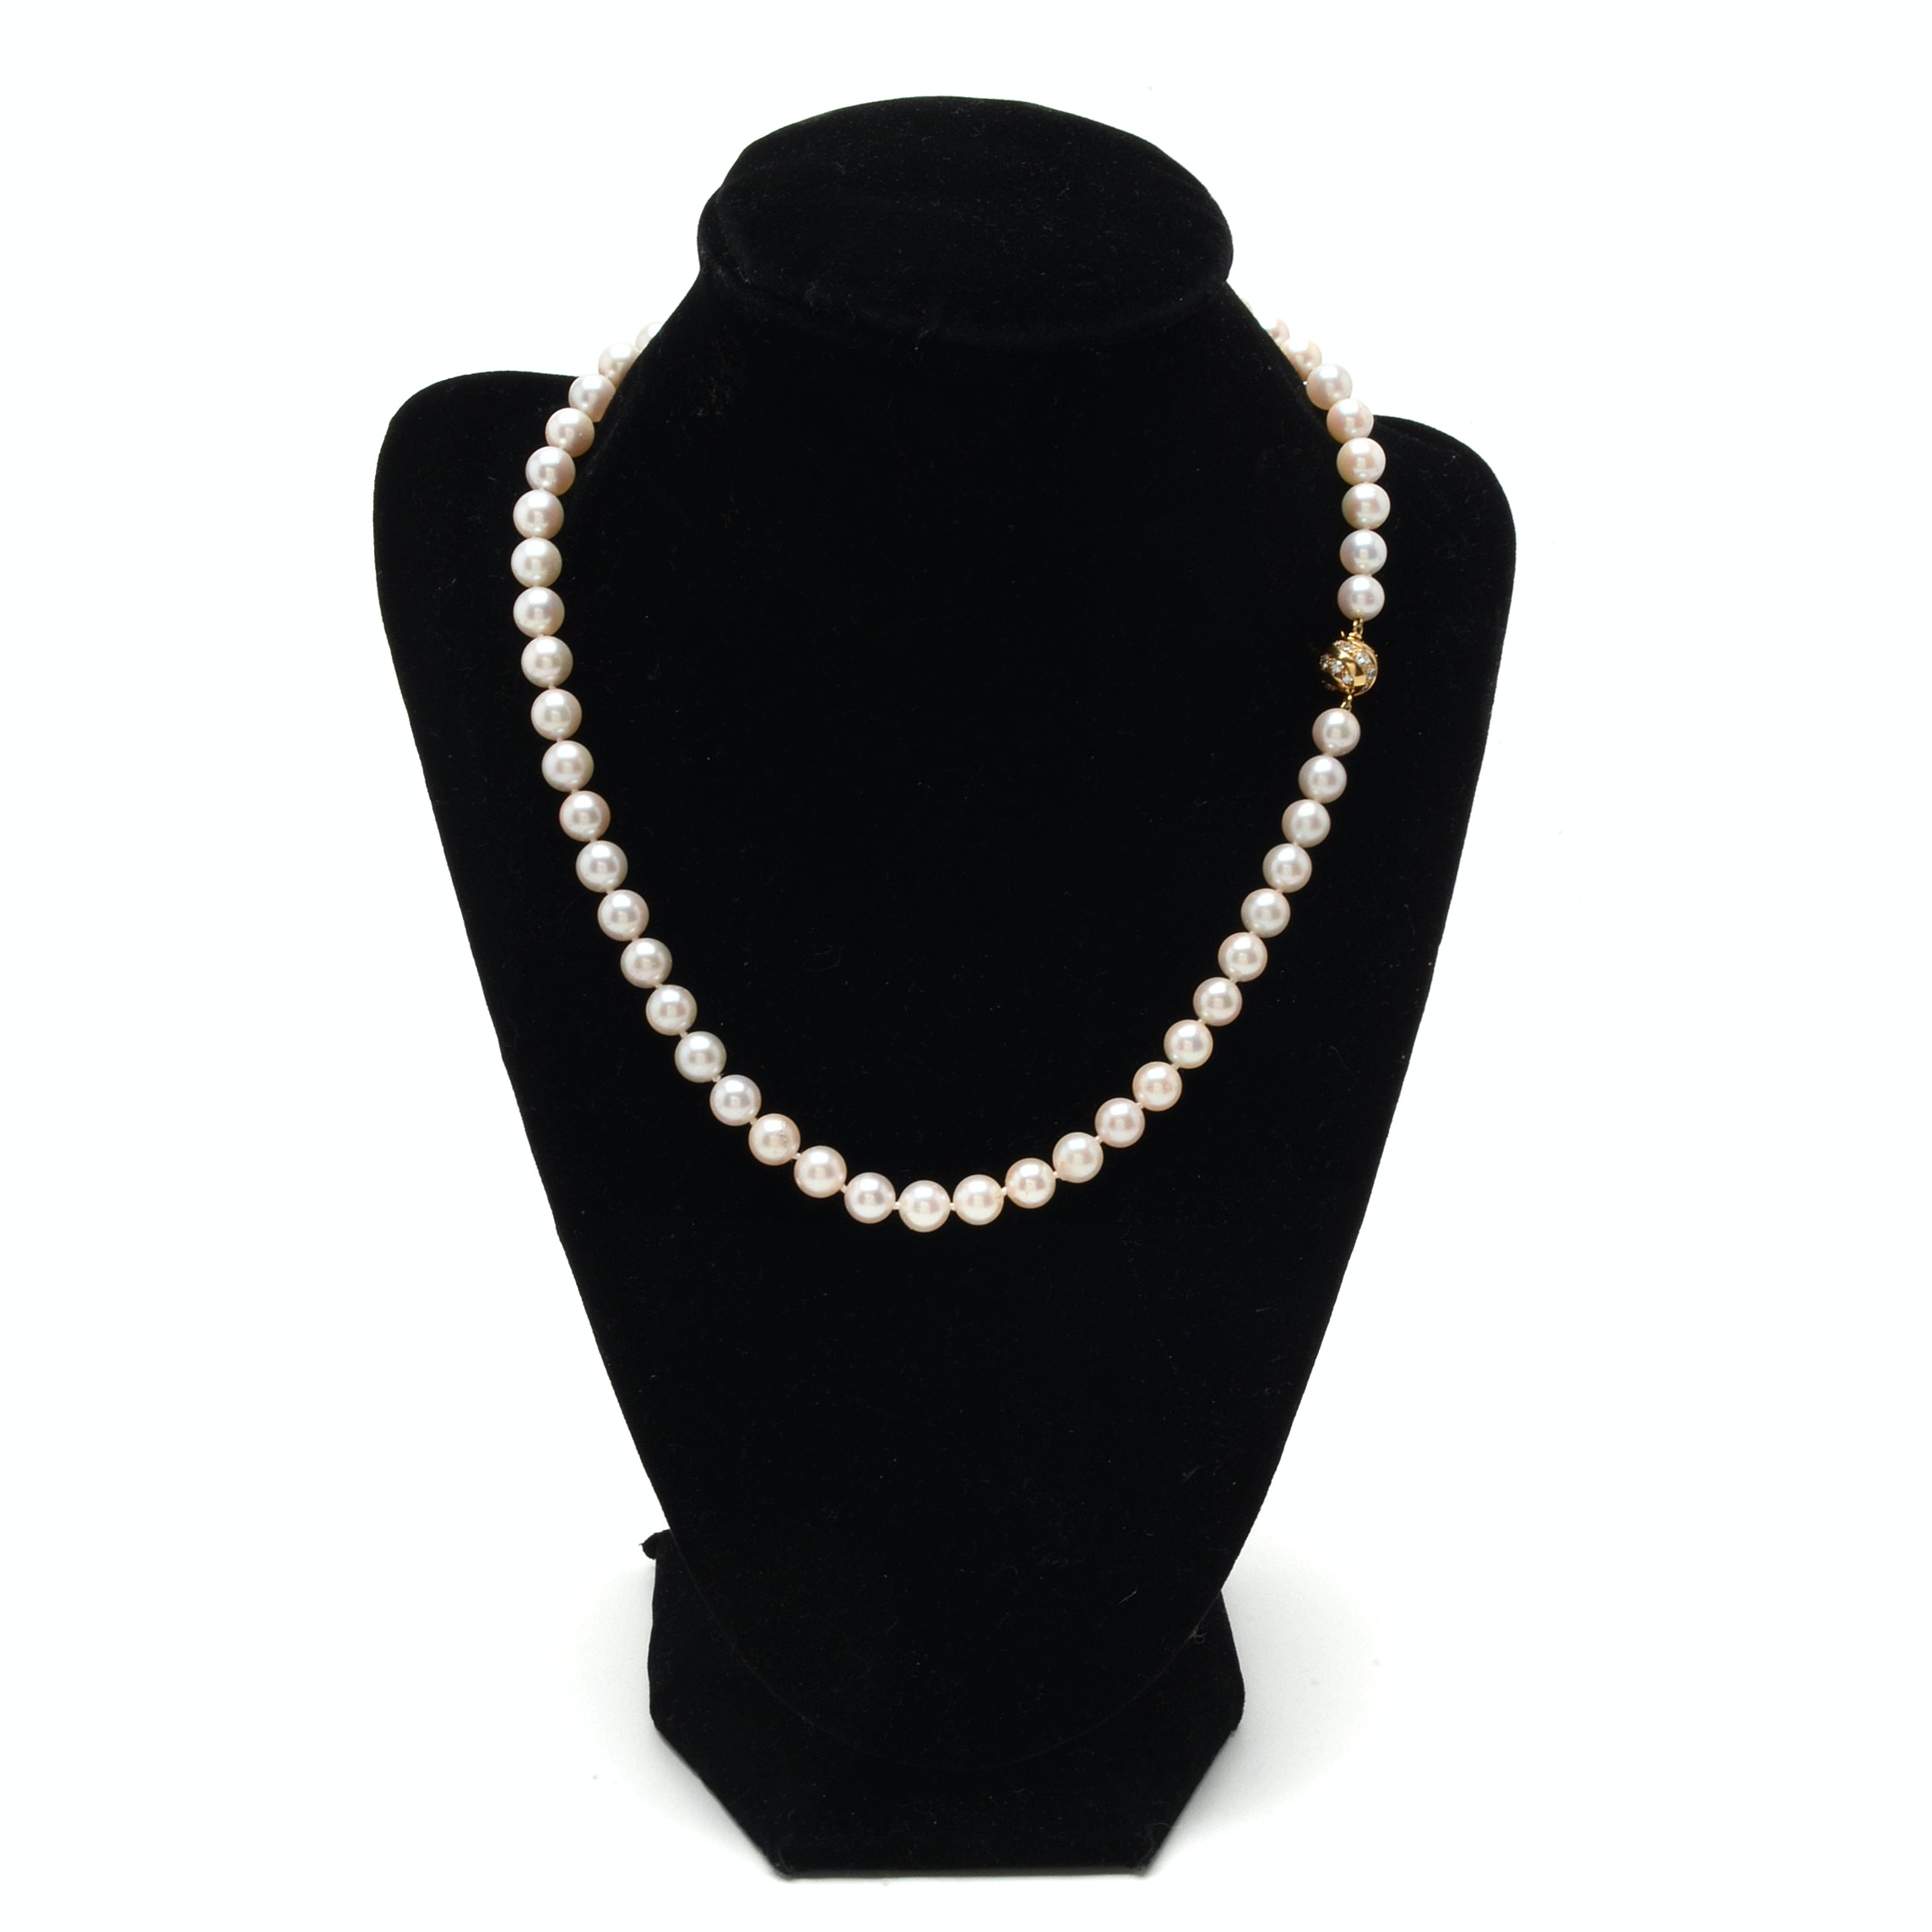 Strand of Cultured Pearls with 18K Yellow Gold Diamond Clasp Necklace